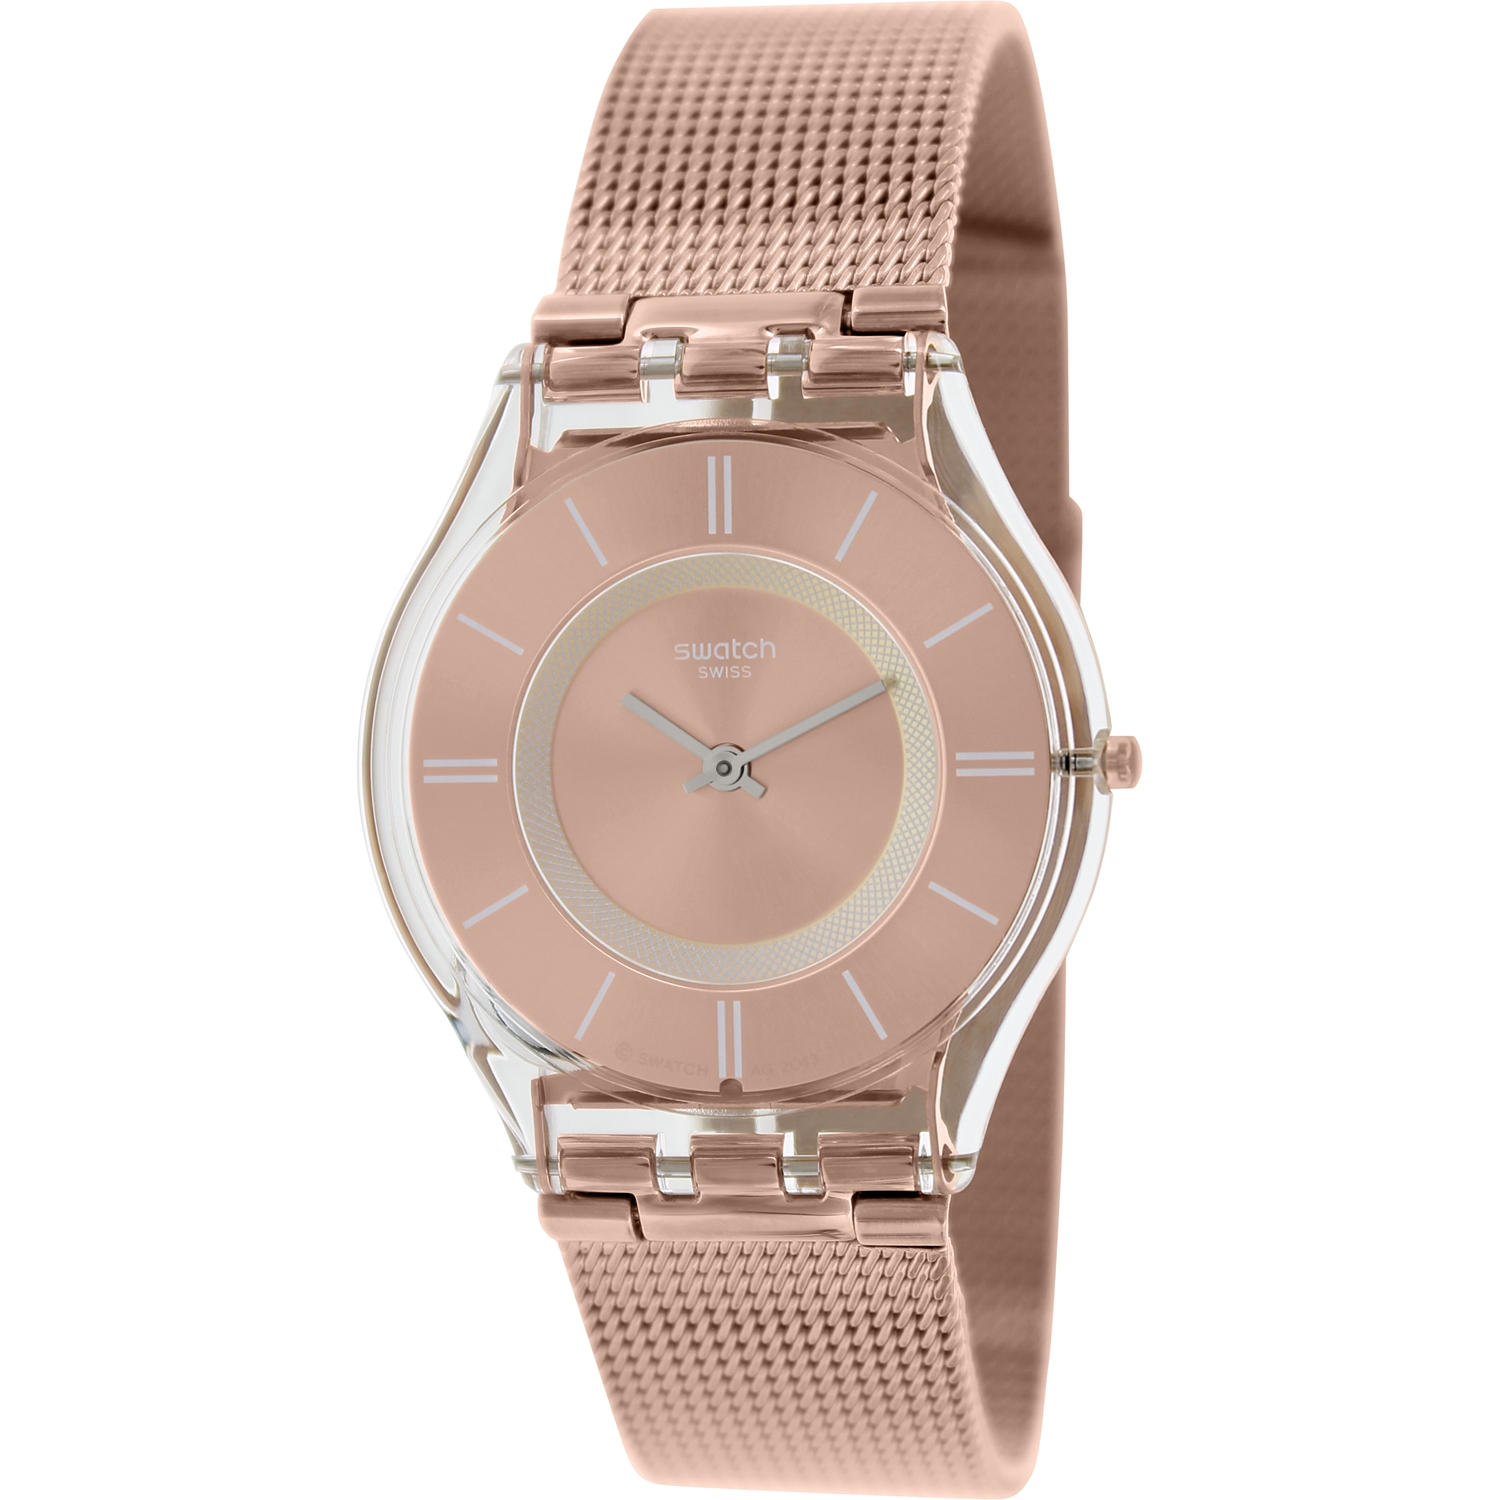 Genskie_chasy_Swatch (85)